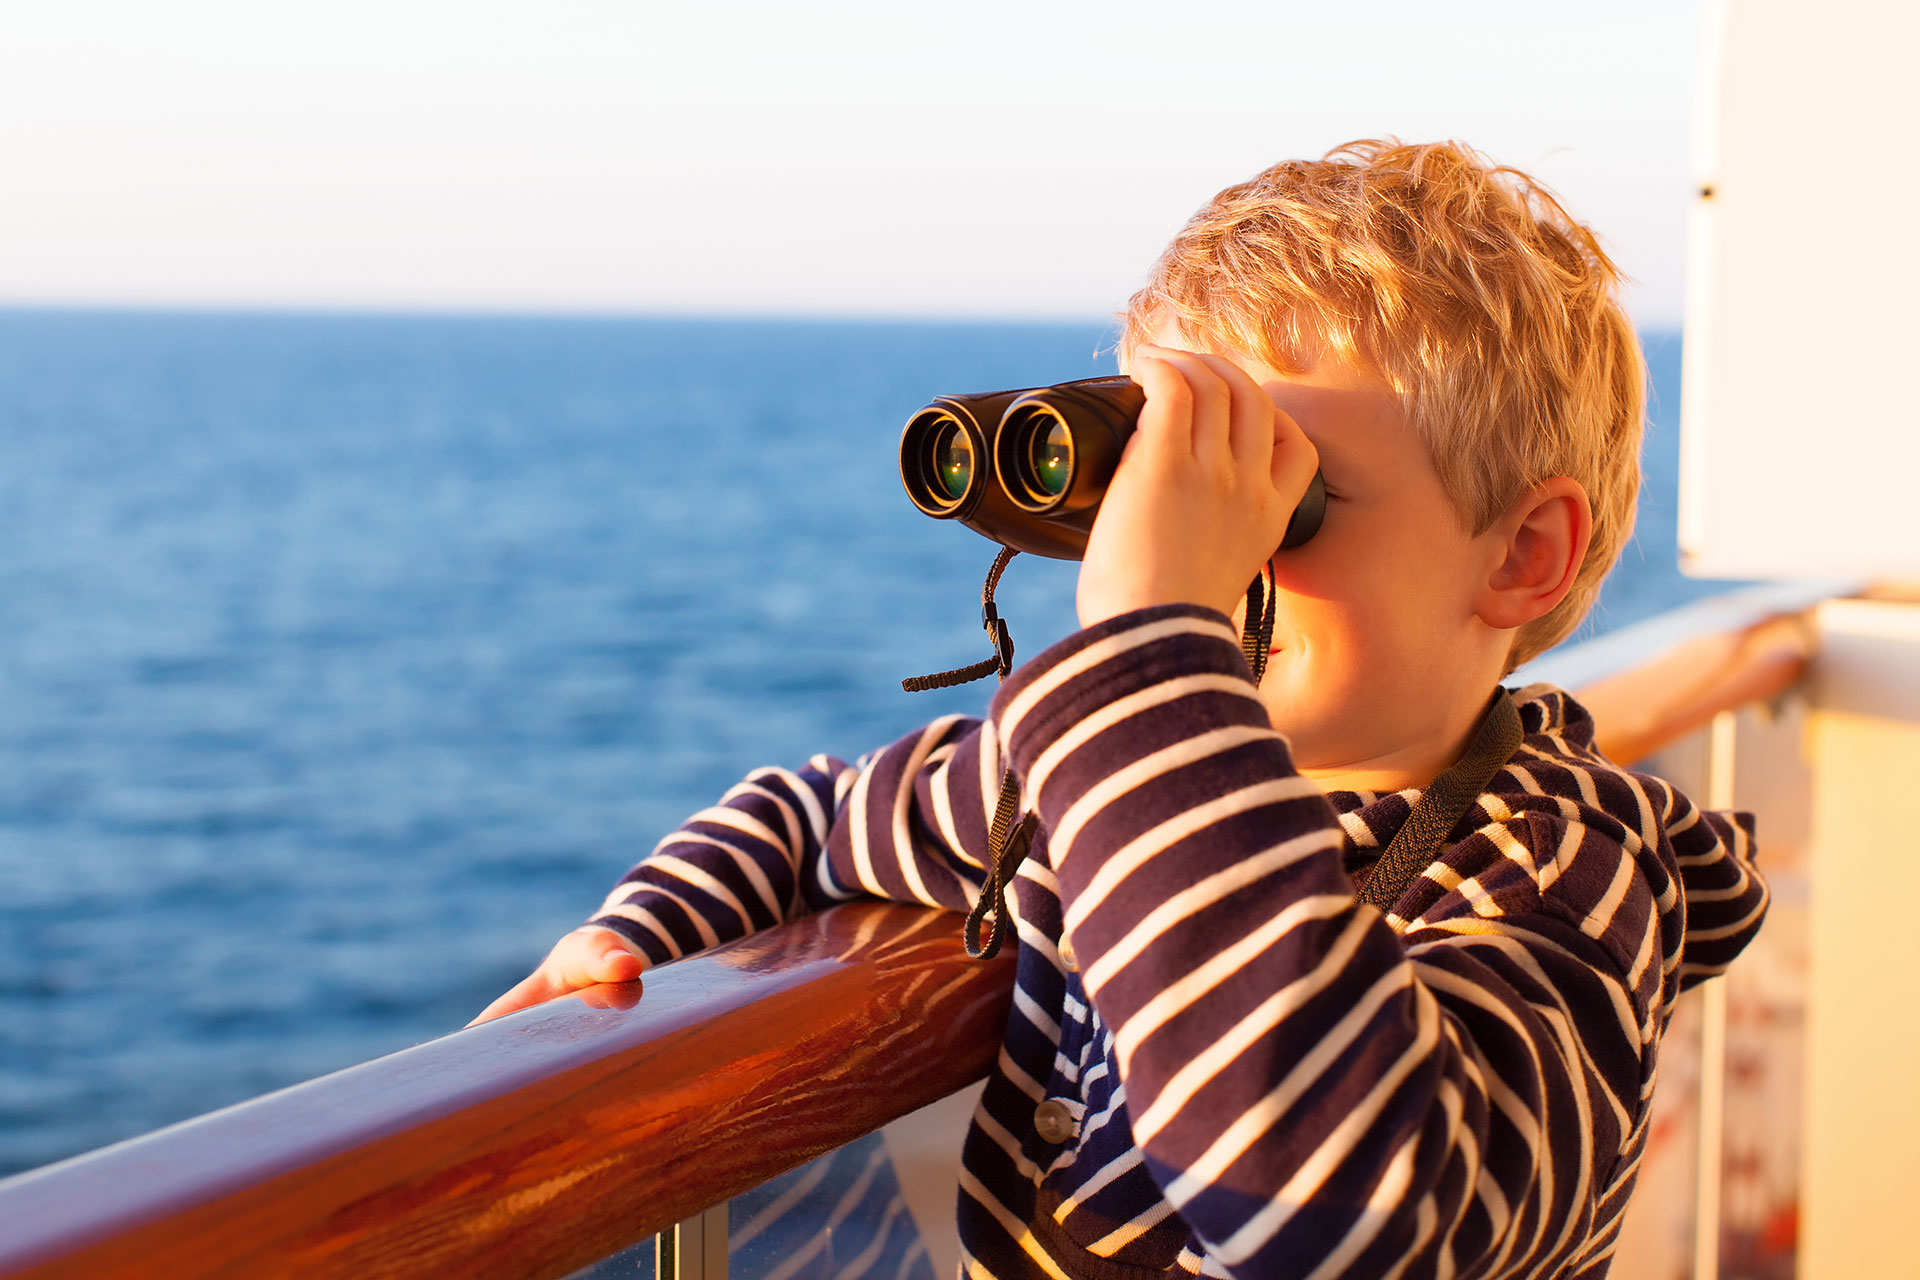 Young Boy With Binoculars on Cruise